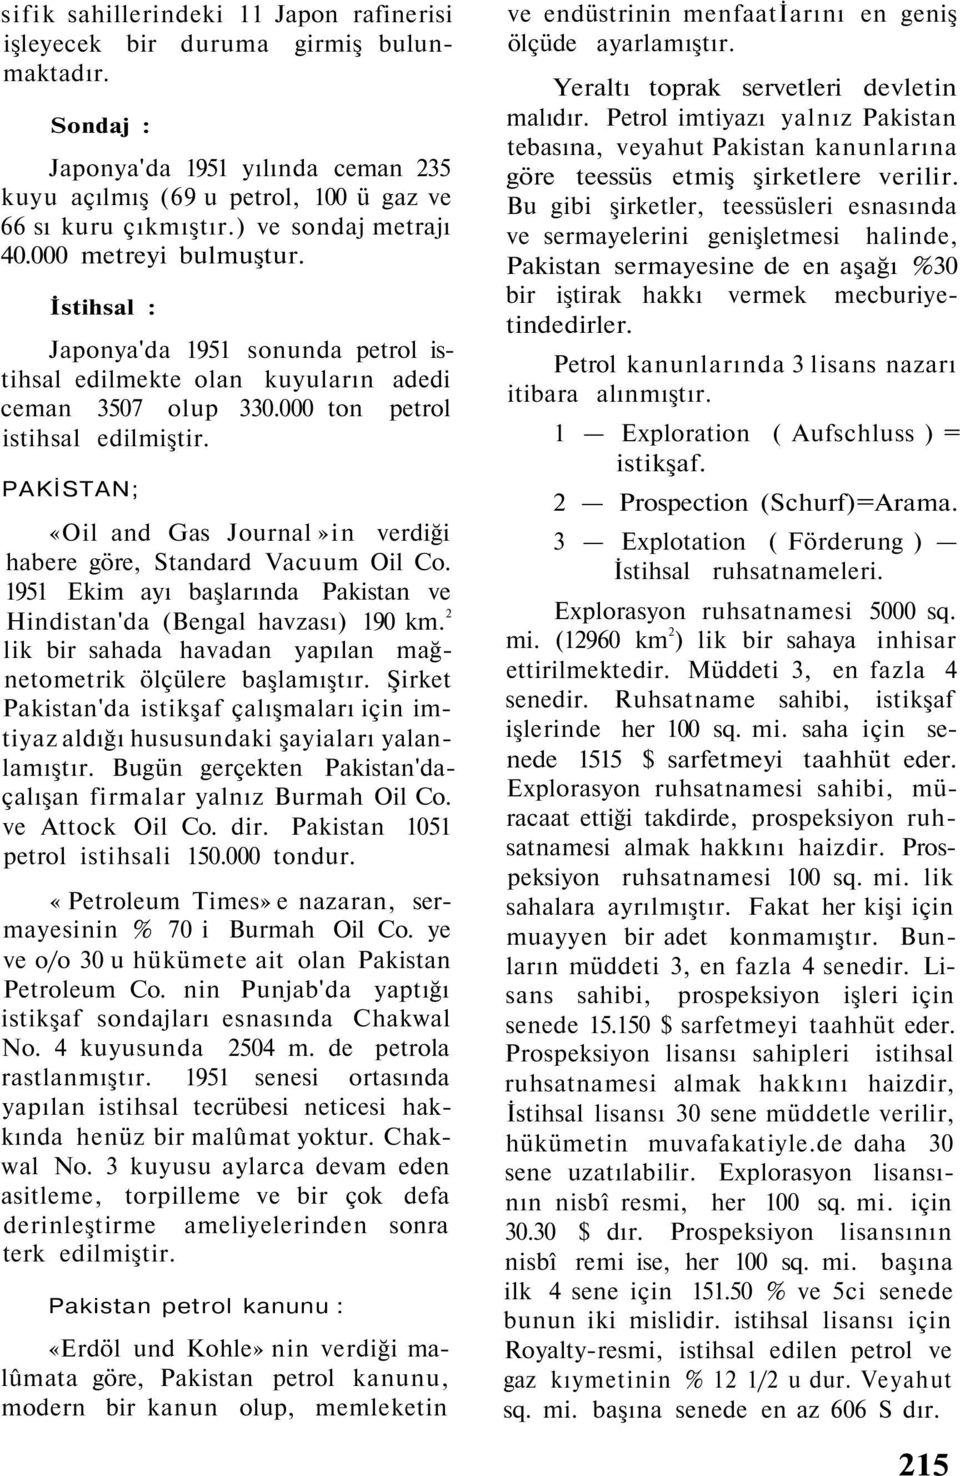 PAKİSTAN; «Oil and Gas Journal»in verdiği habere göre, Standard Vacuum Oil Co. 1951 Ekim ayı başlarında Pakistan ve Hindistan'da (Bengal havzası) 190 km.